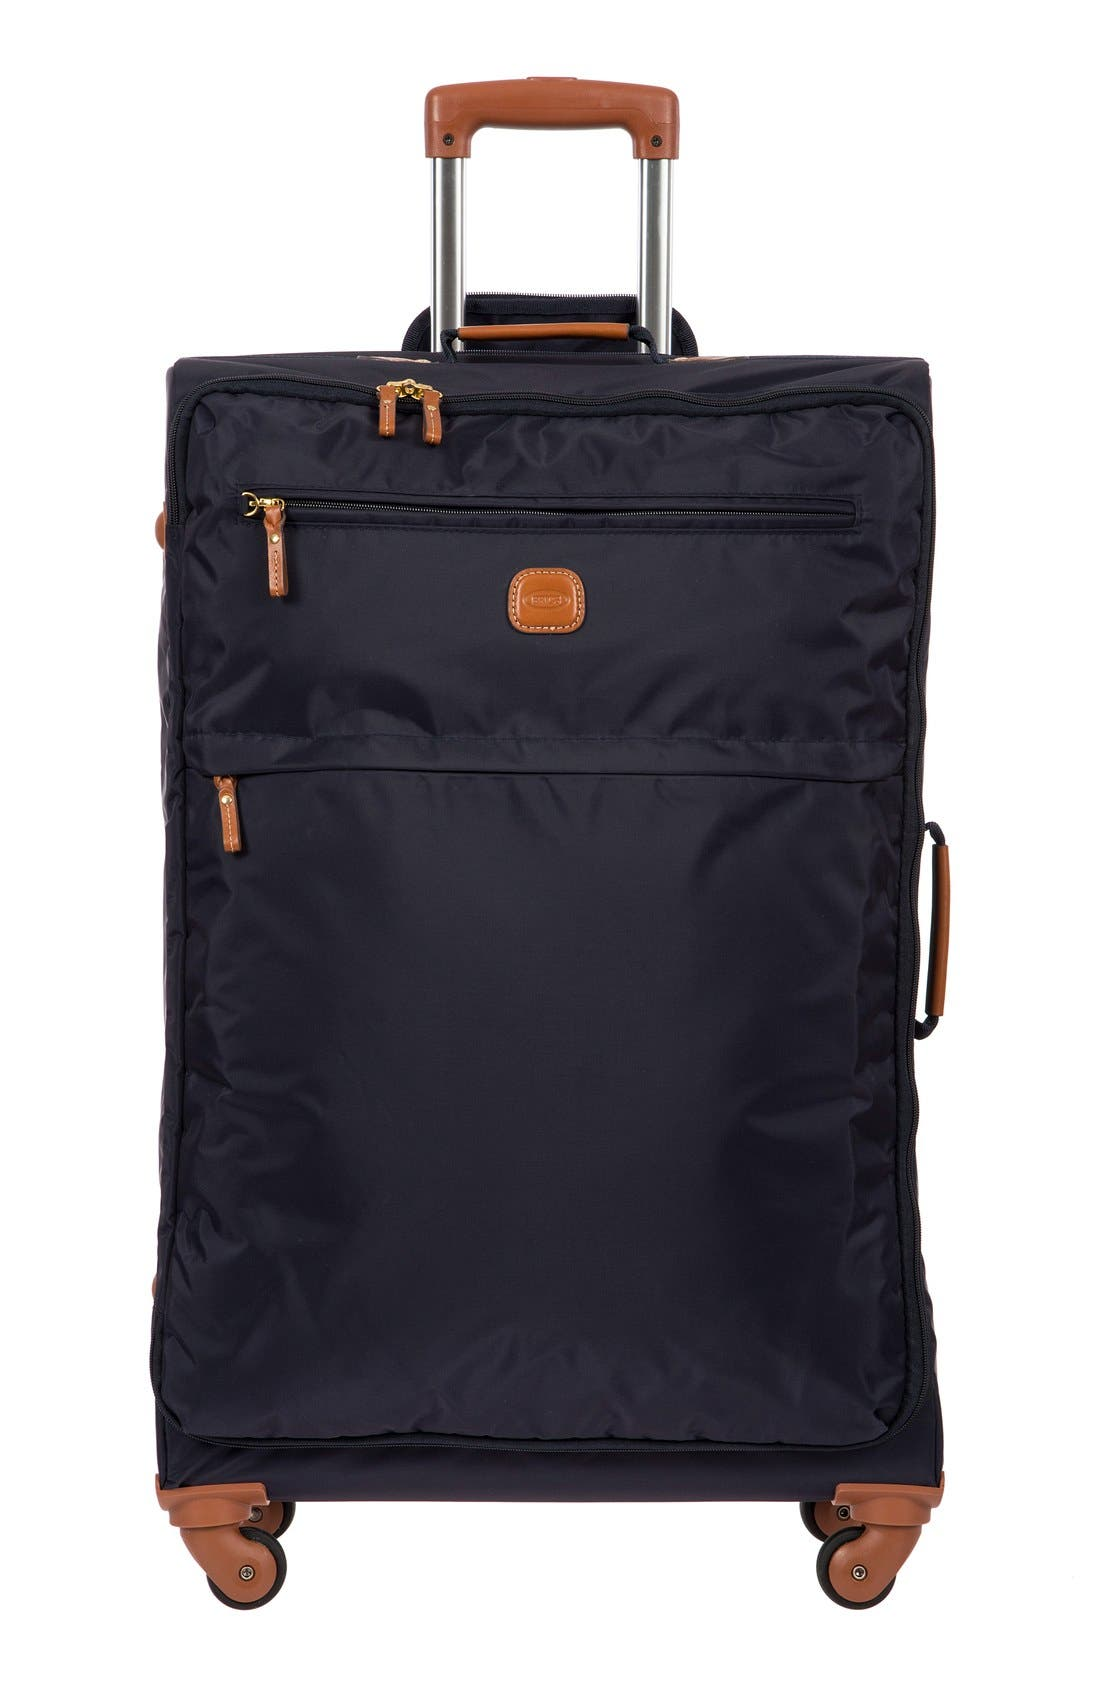 Main Image - Bric's X-Bag 30 Inch Spinner Suitcase